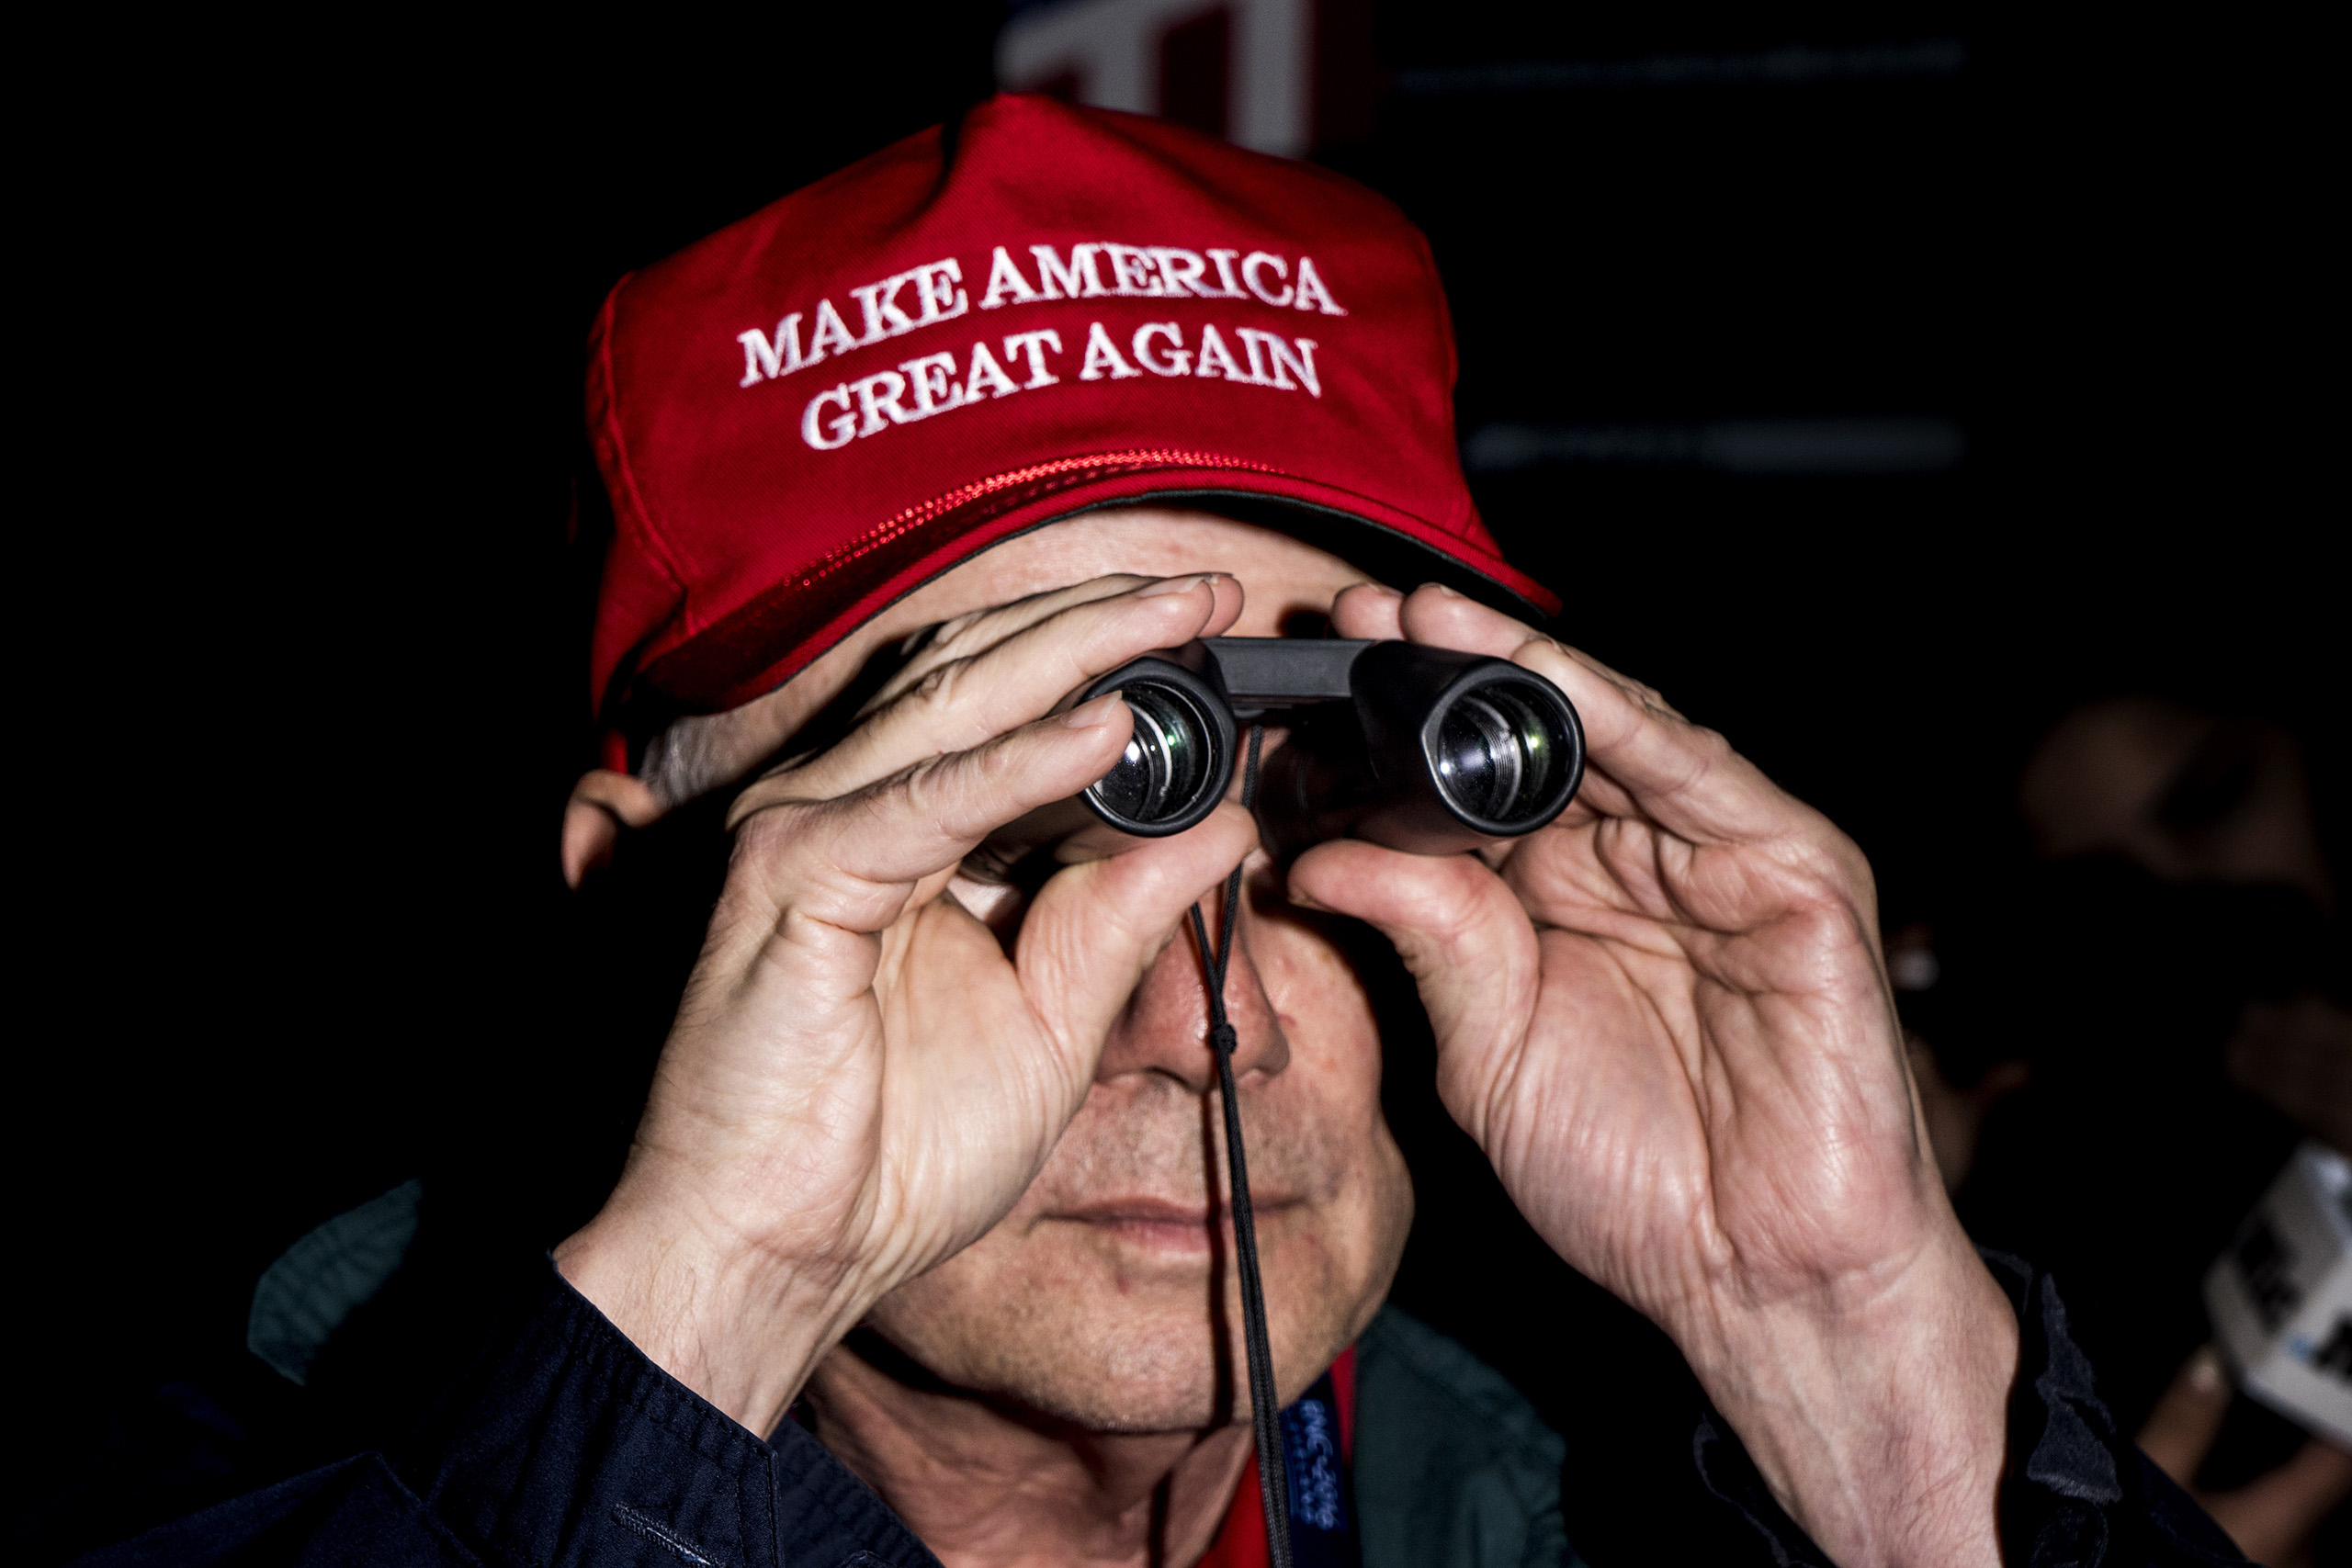 An attendee at the Republican National Convention on July 19, 2016, at the Quicken Loans Arena in Cleveland, Ohio.